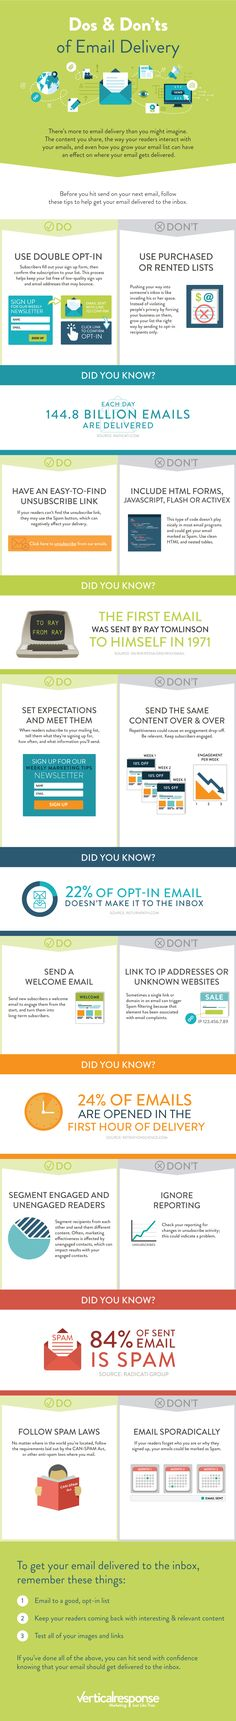 6 Dos and Don'ts When Sending Business Emails (Infographic) | Inc.com